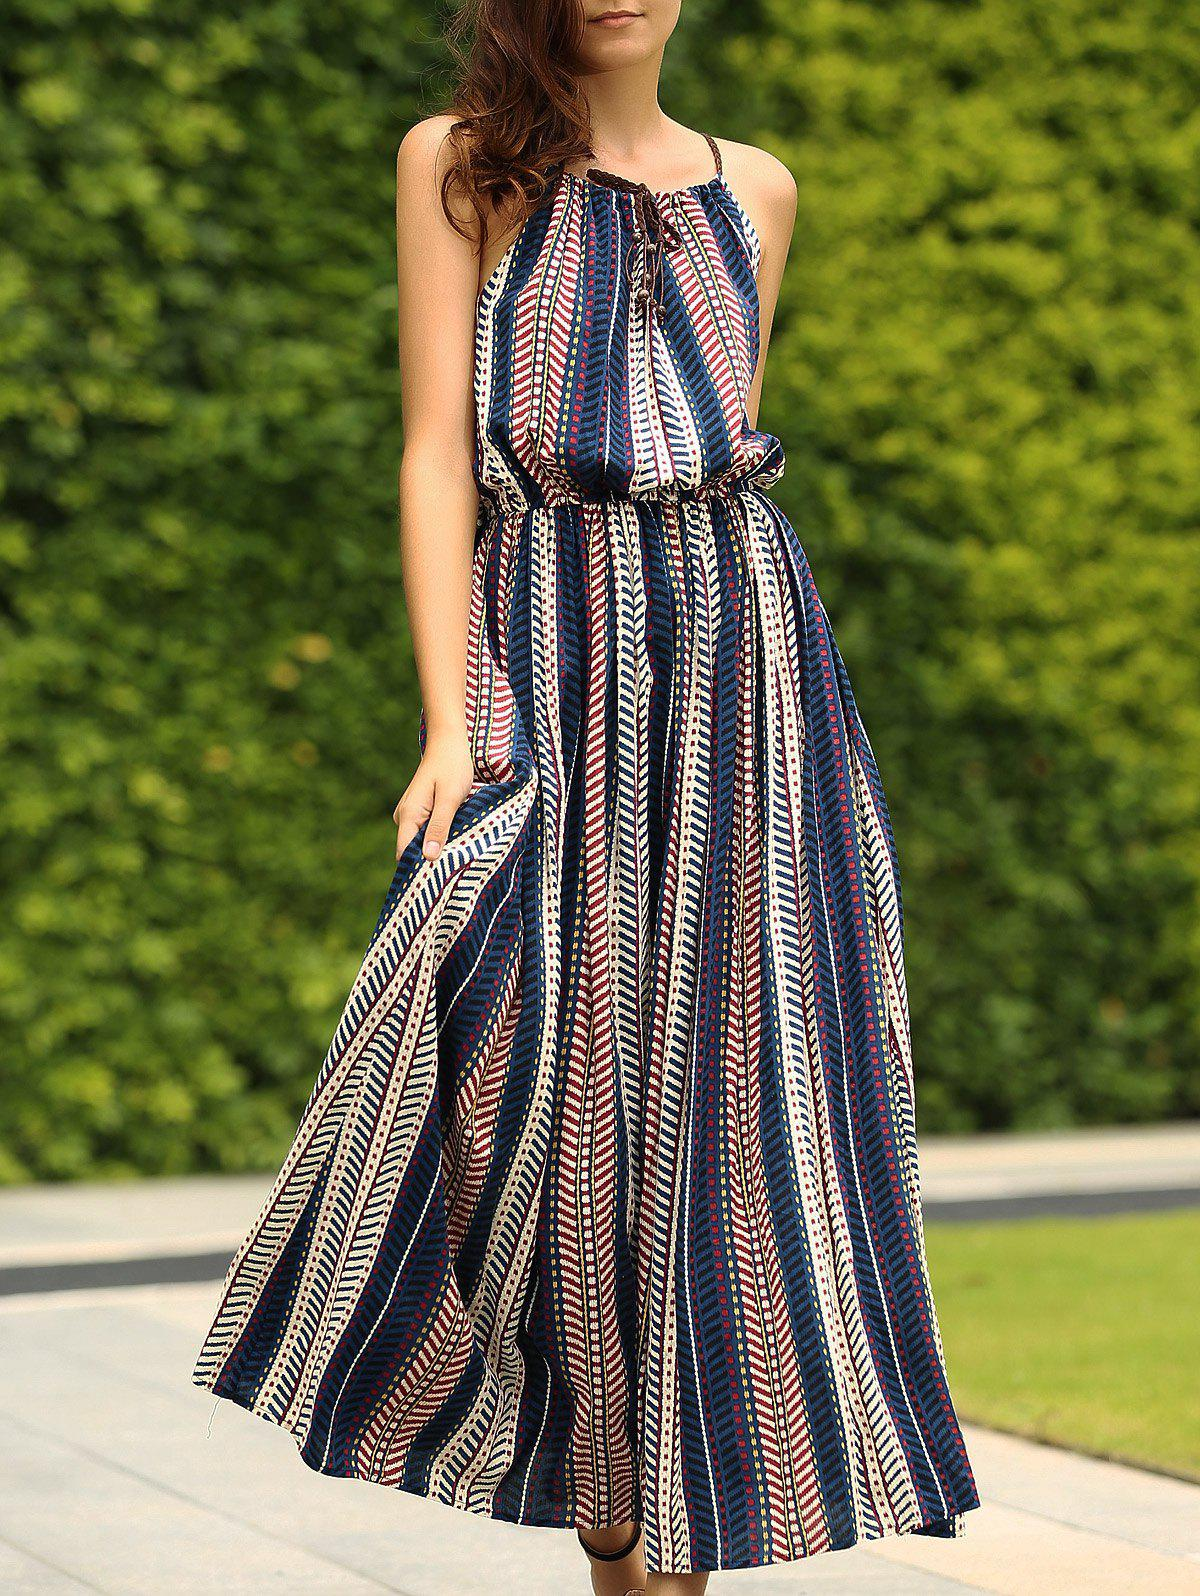 Bohemian Spaghetti Strap Sleeveless Striped Maxi Dress For Women - COLORMIX ONE SIZE(FIT SIZE XS TO M)